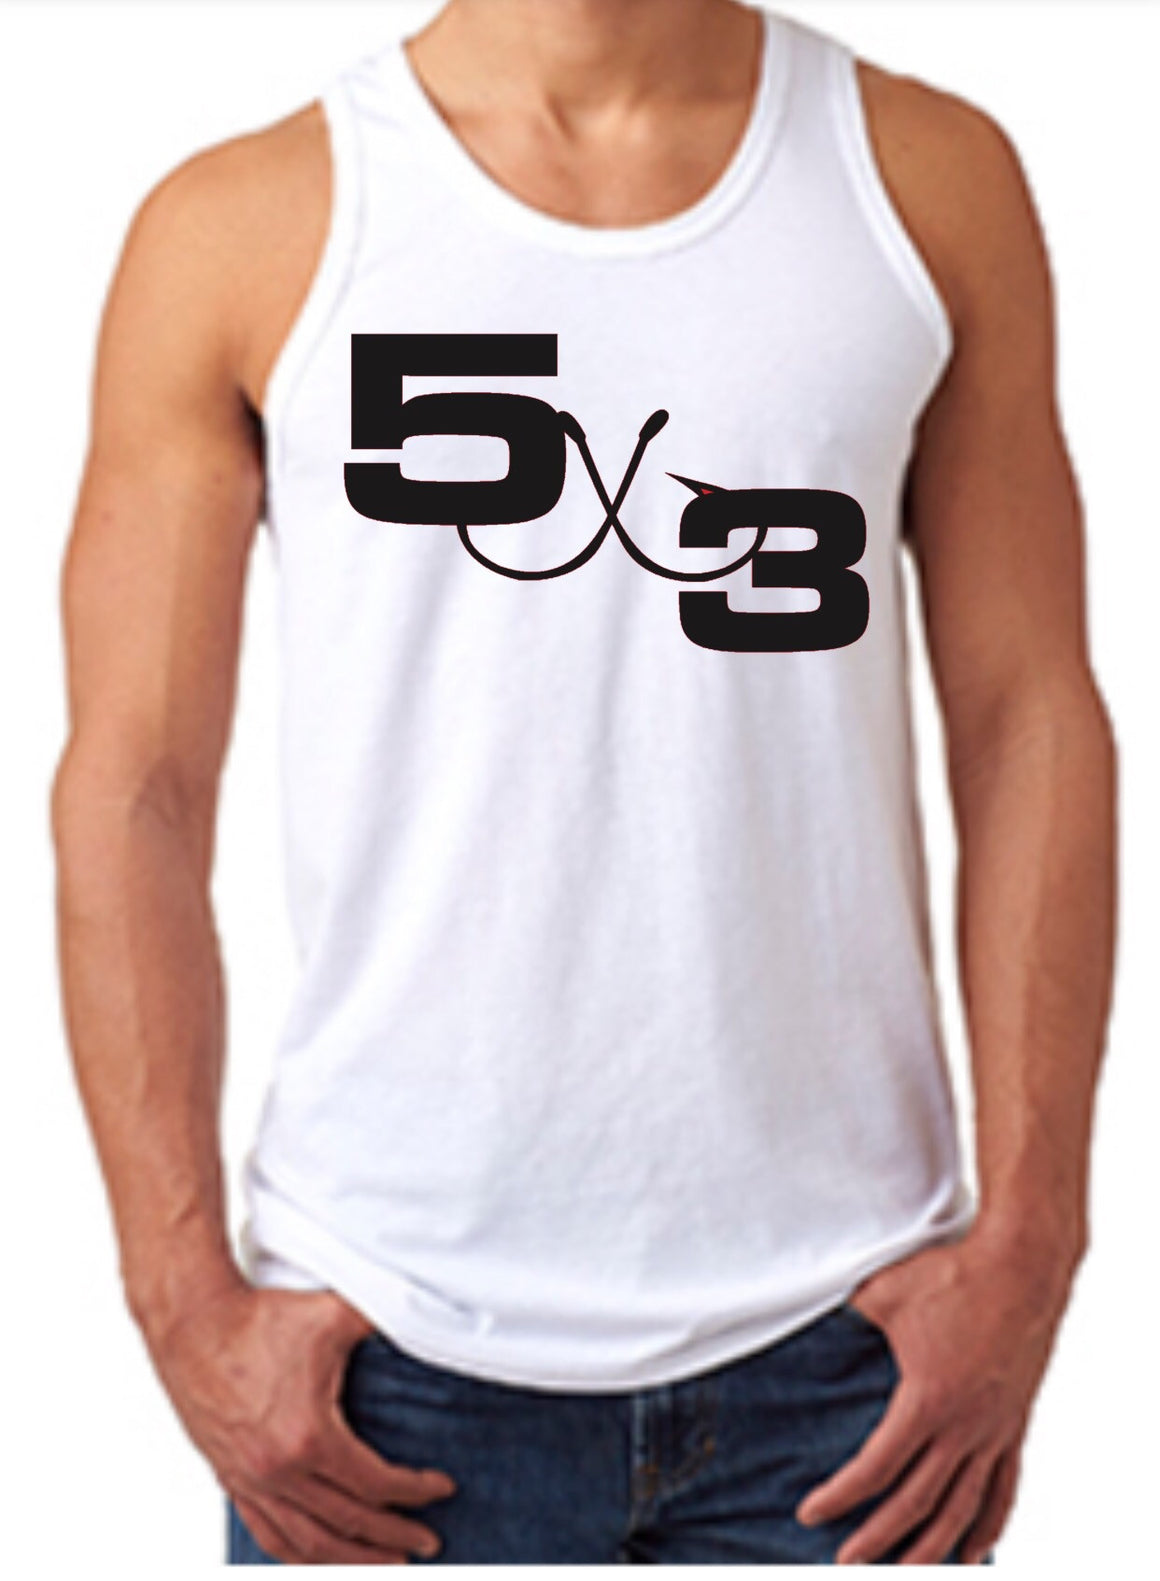 Moisture Wicking Performance based 5X3 Tank Top